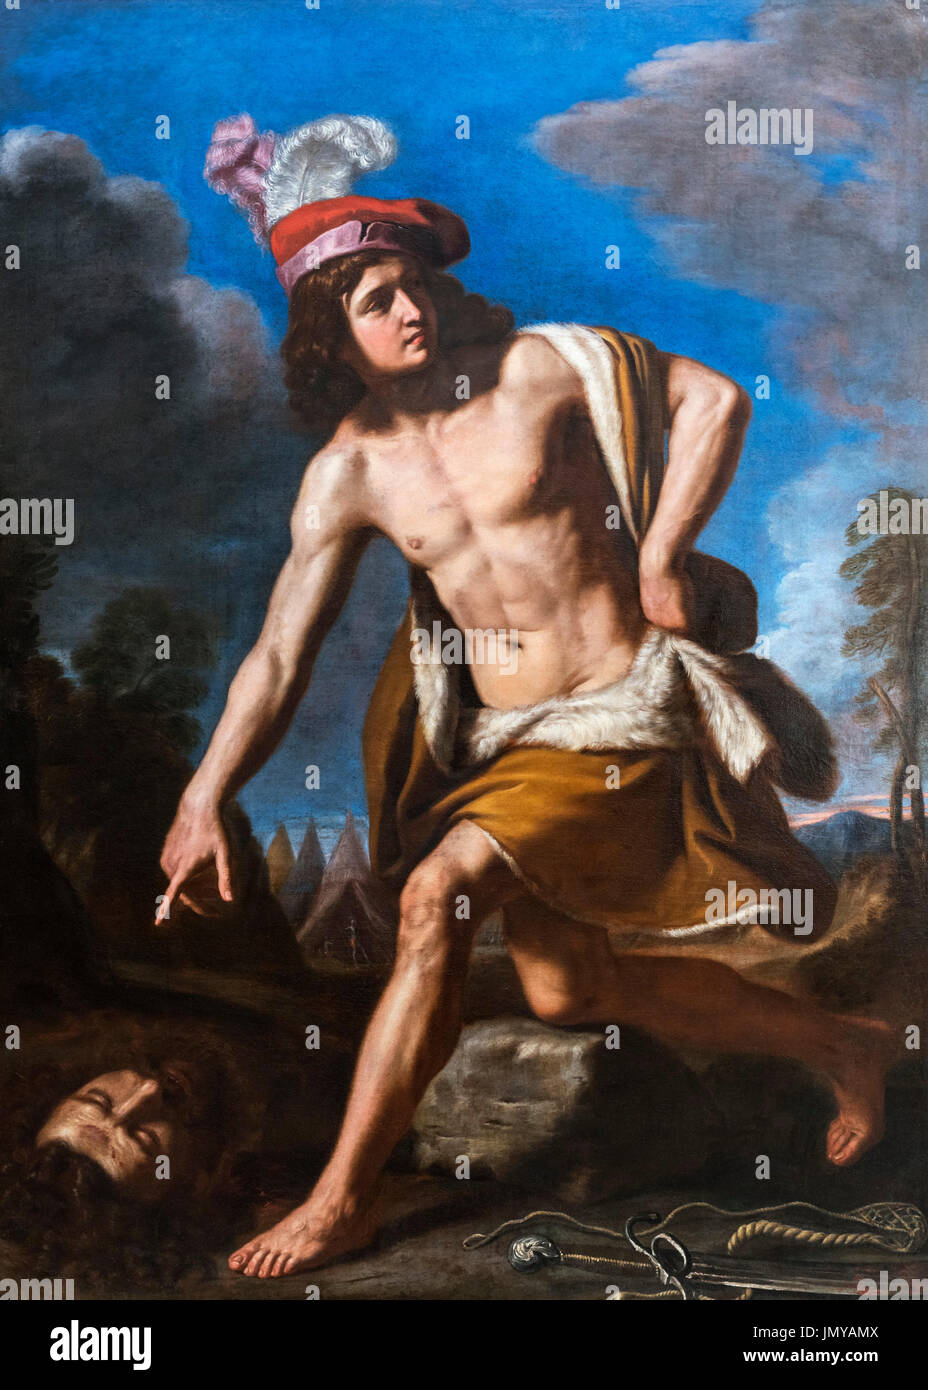 David with the Head of Goliath by Guercino (Giovanni Francesco Barbieri: 1591-1666), oil on canvas, 1657 - Stock Image